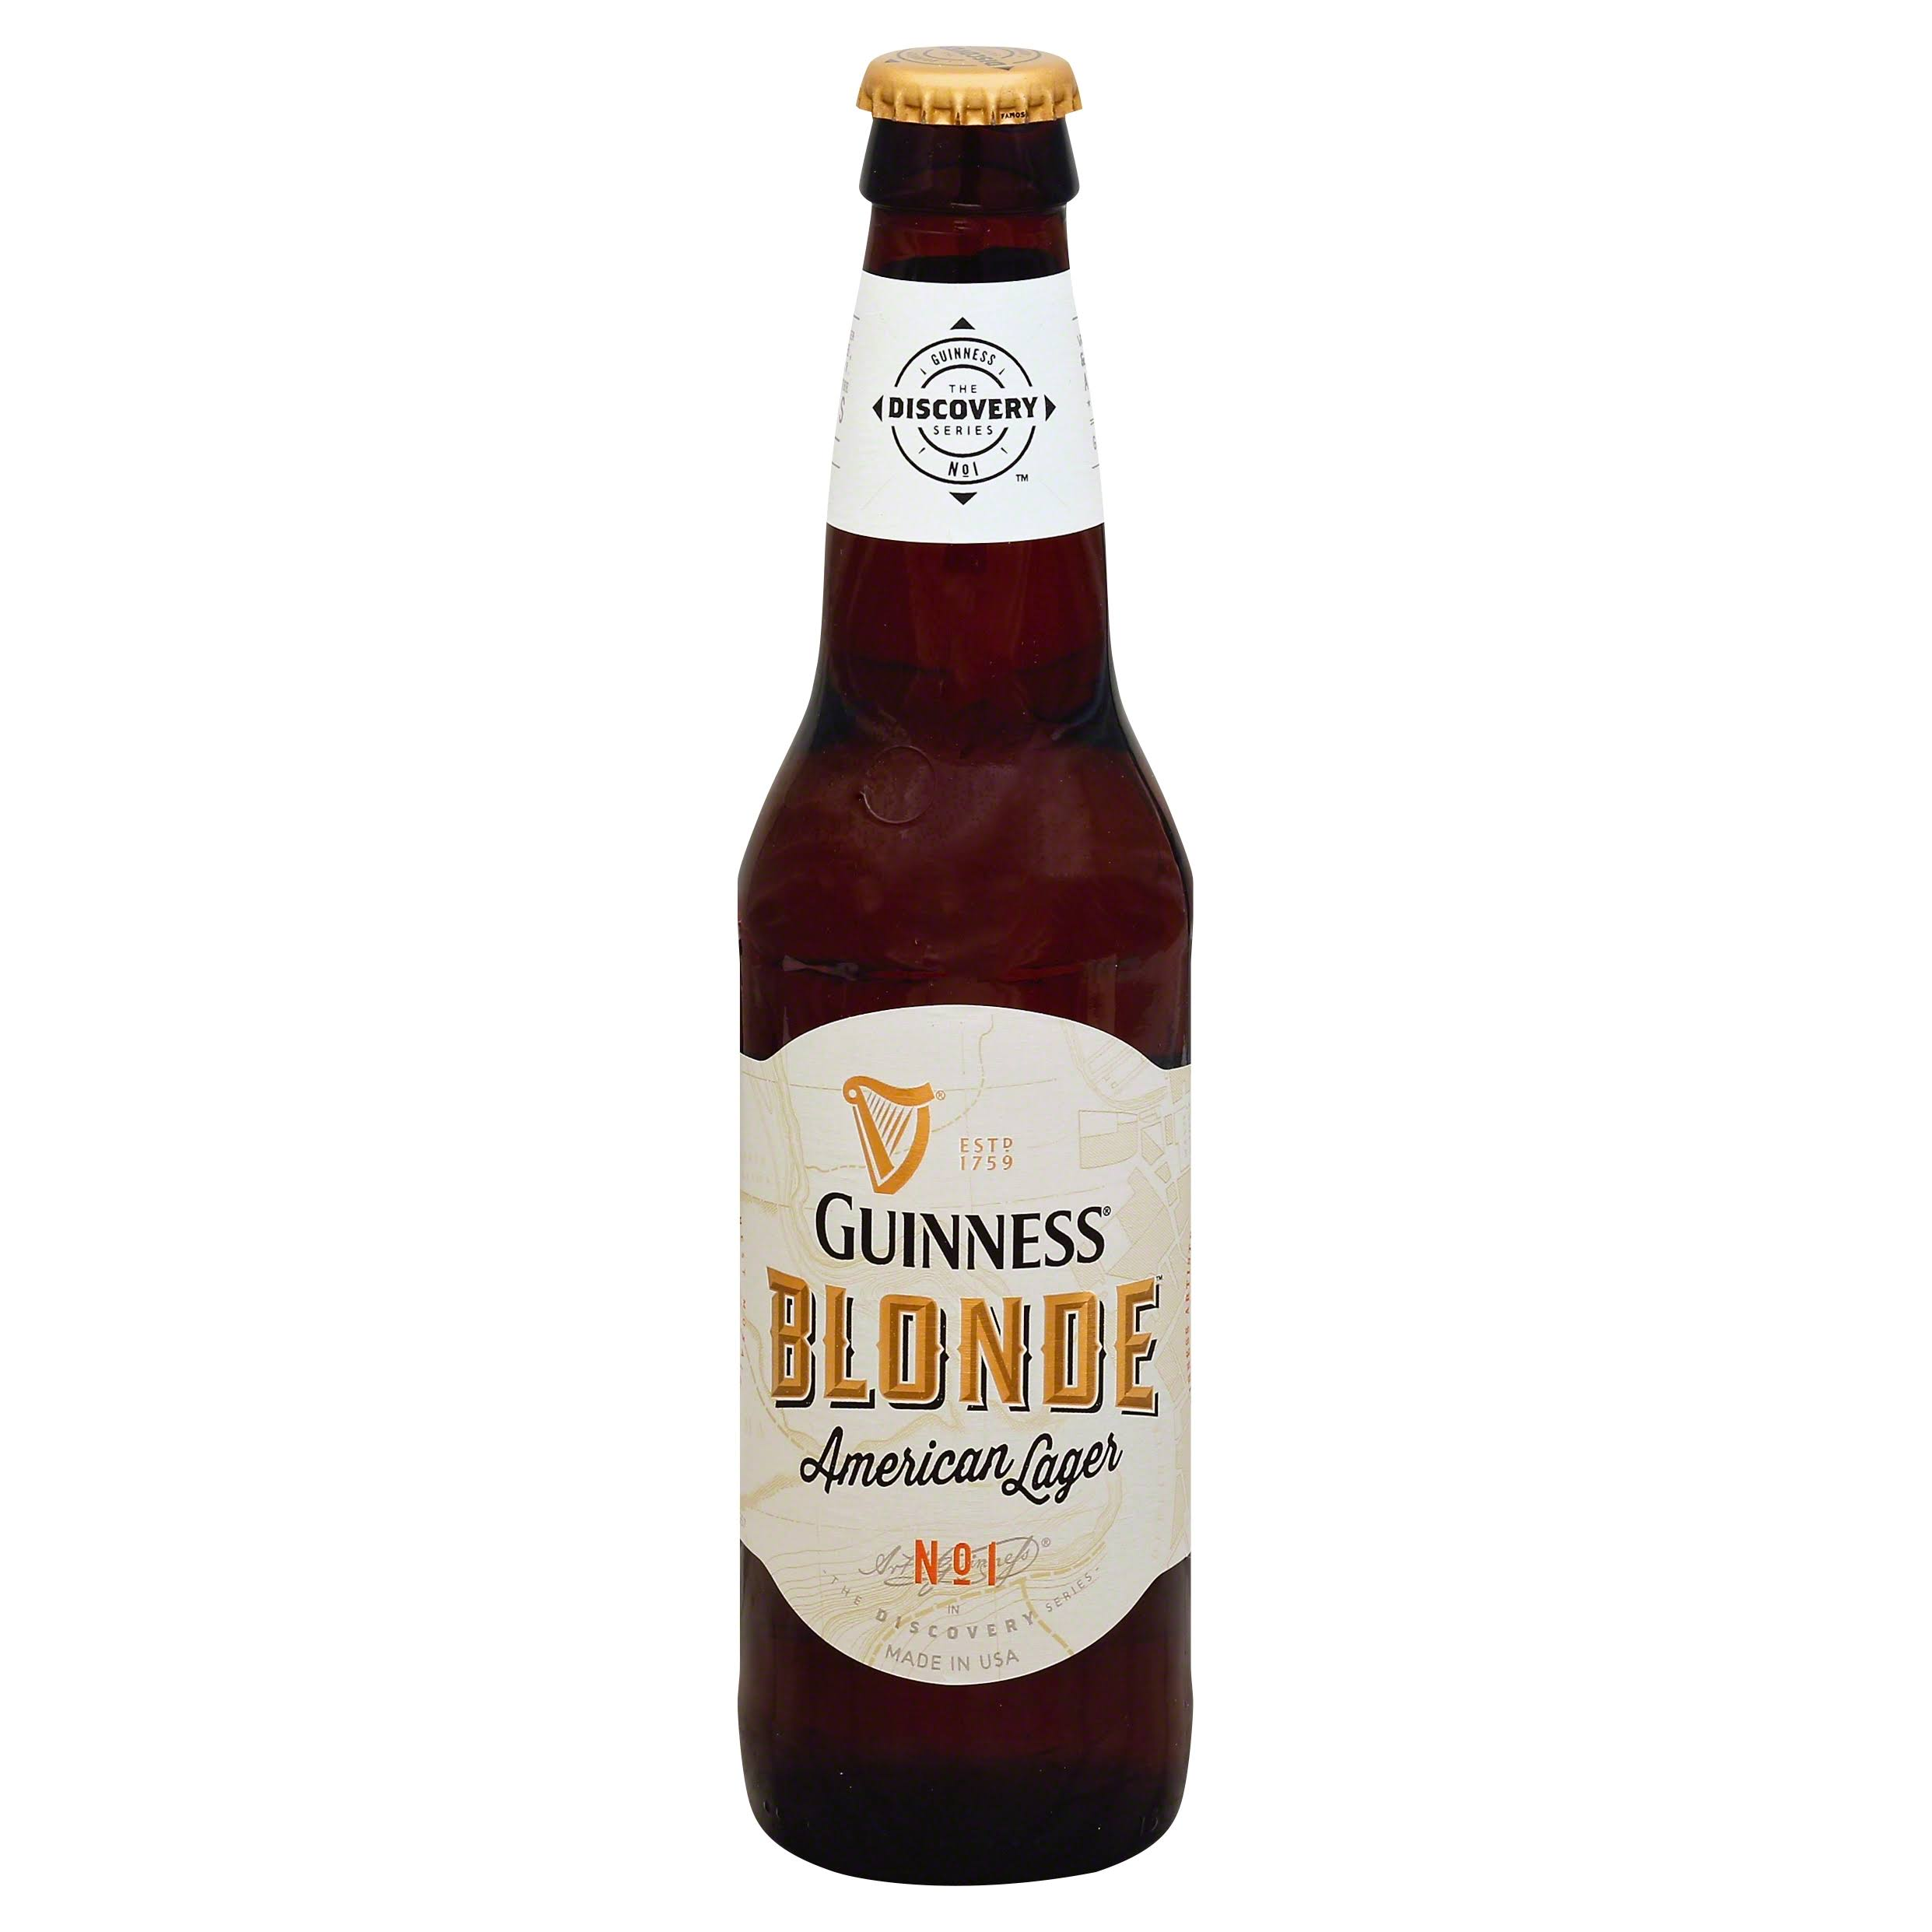 Guinness Blonde American Lager Beer - 6 pack, 12 fl oz bottle